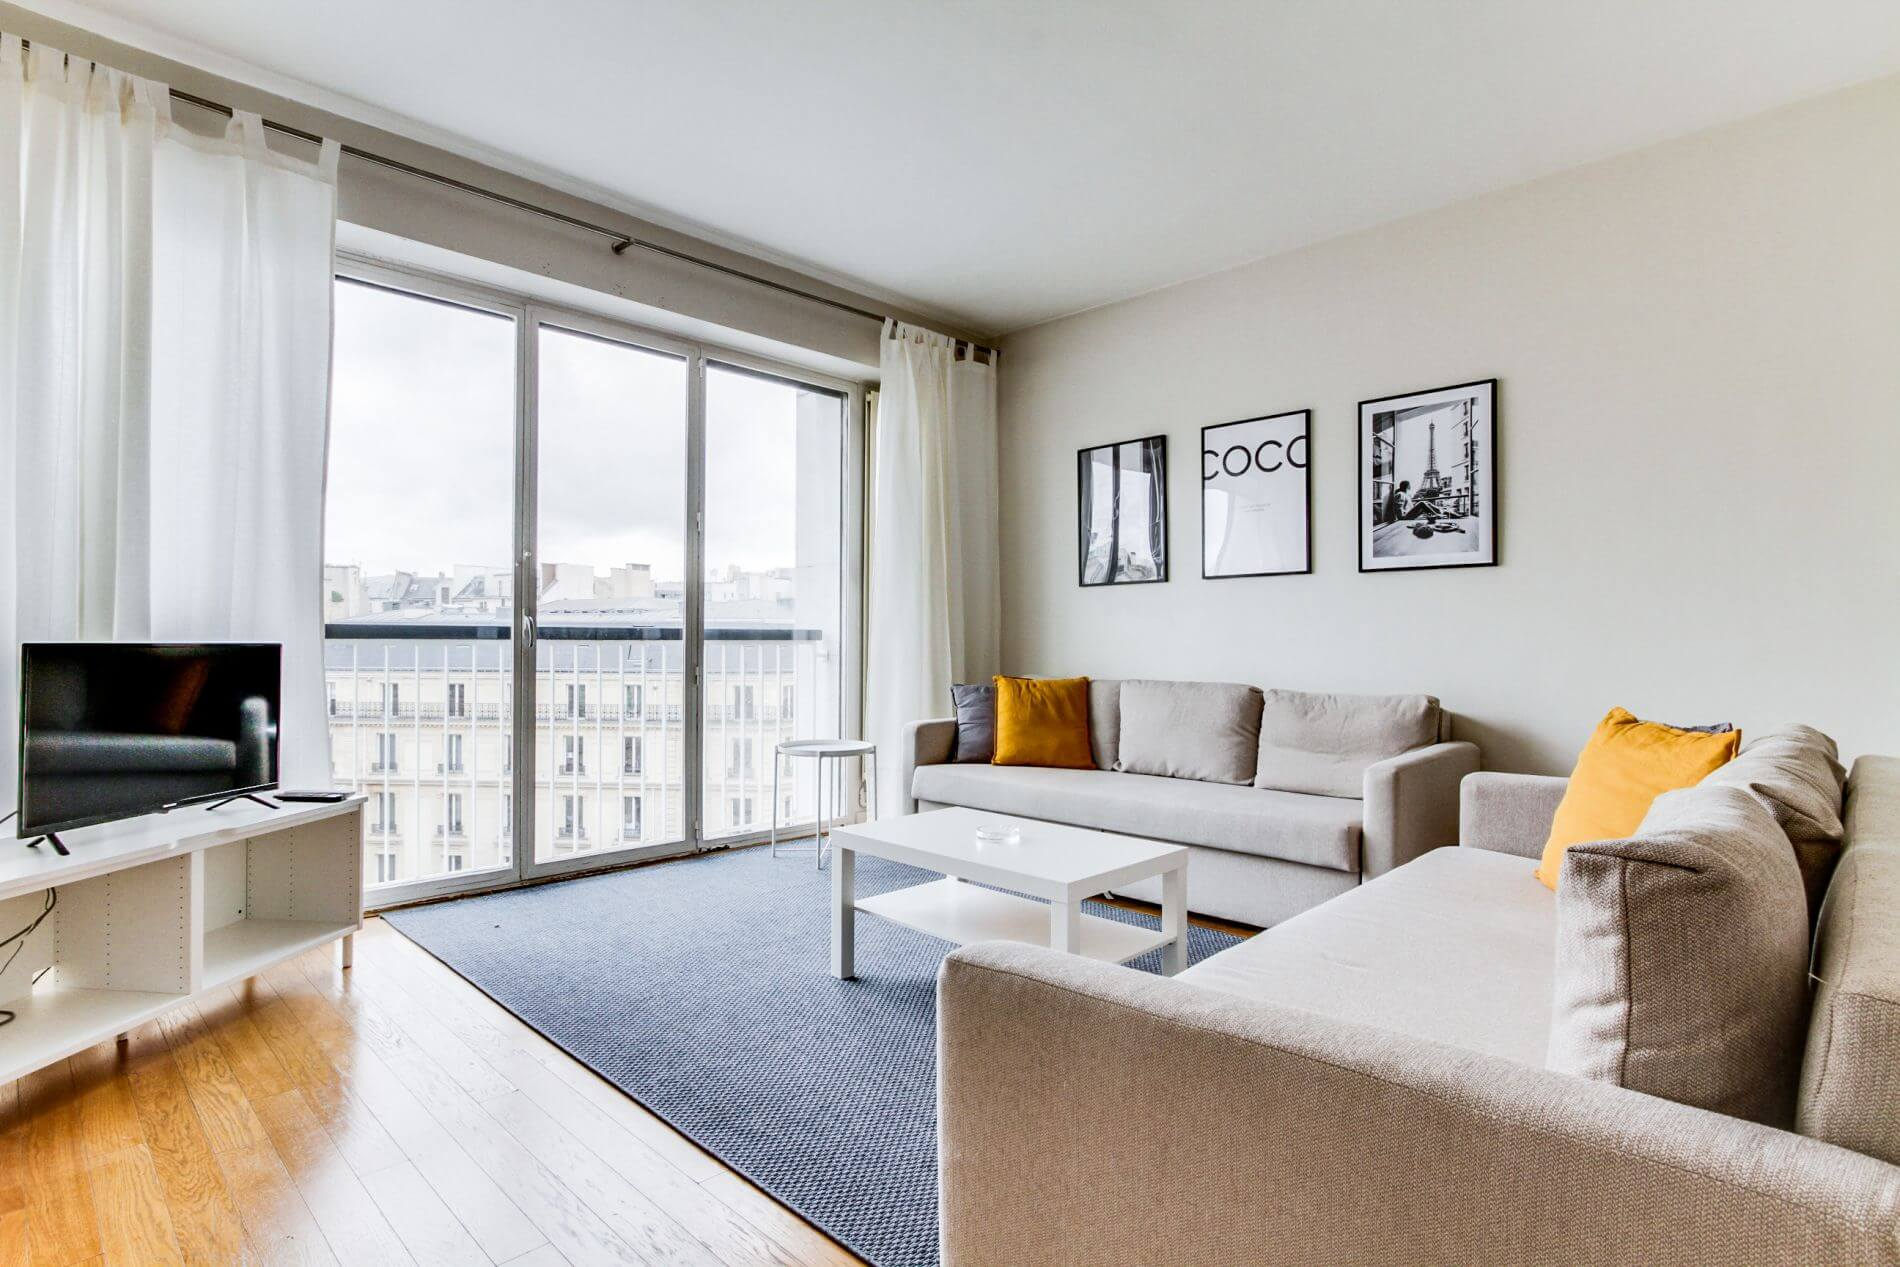 Furnished family-friendly property in the 8th arrondissement of Paris